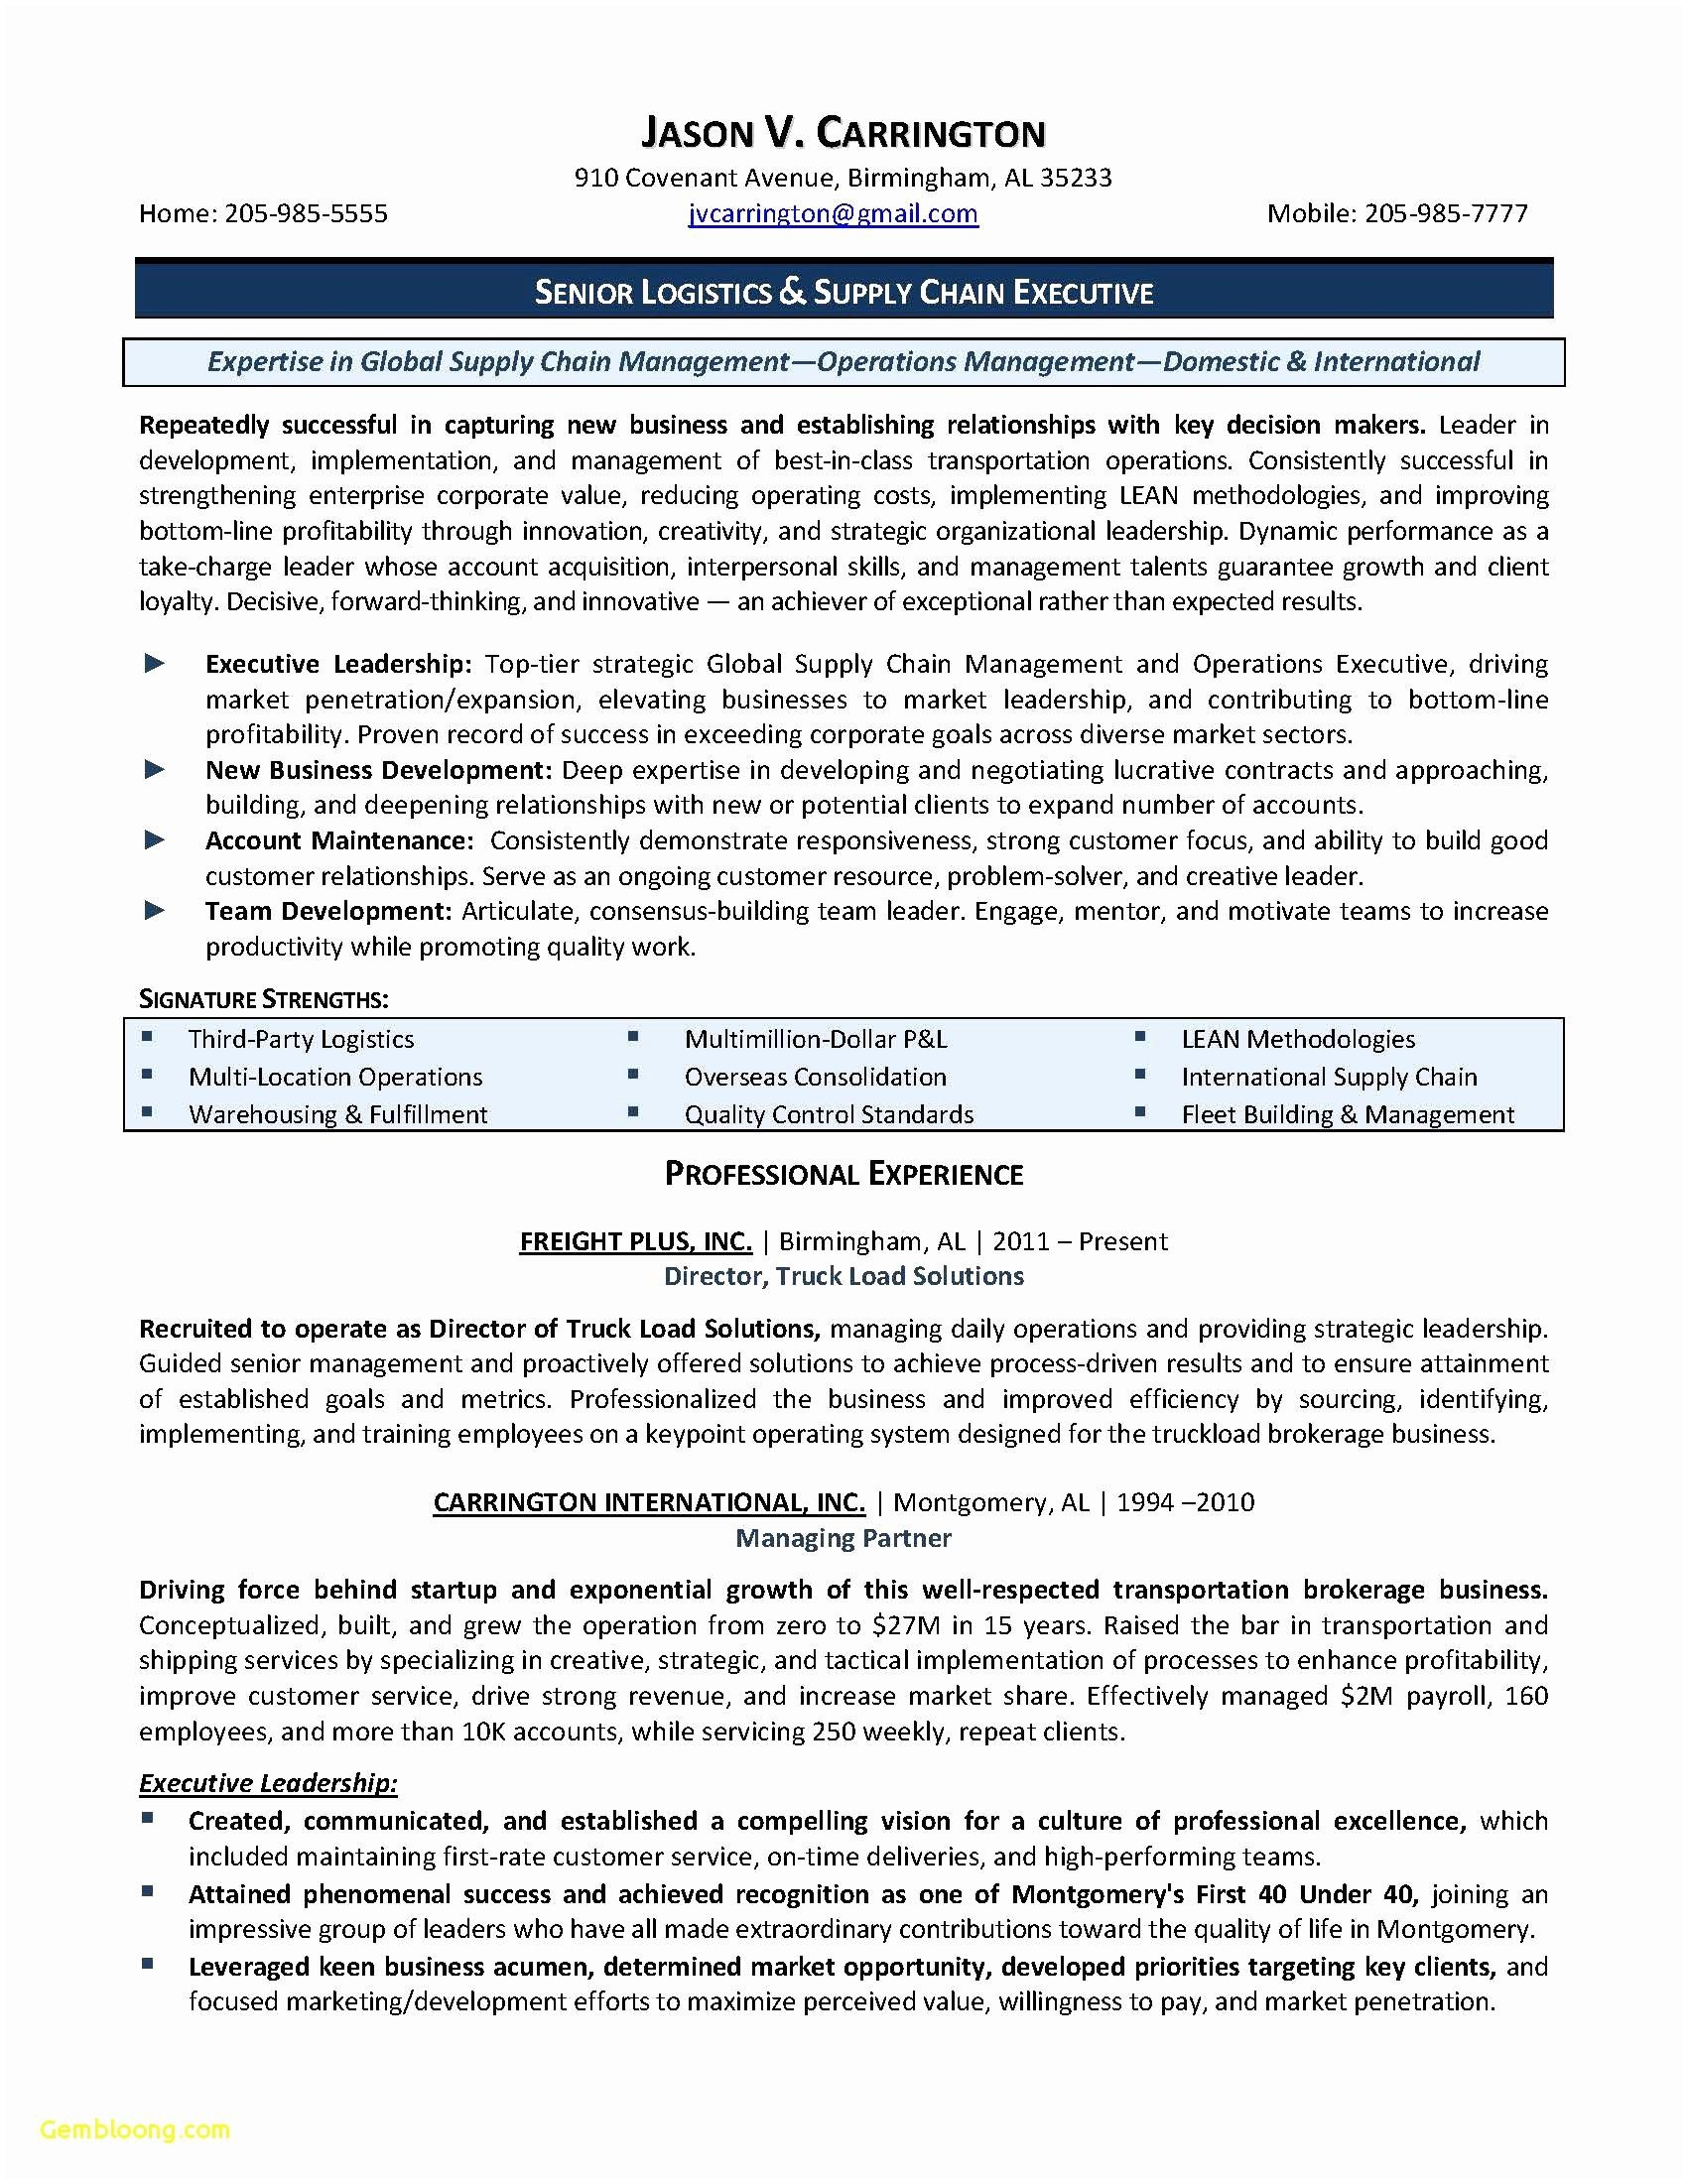 Senior Executive Resume Examples - Supply Chain Management Resume Sample